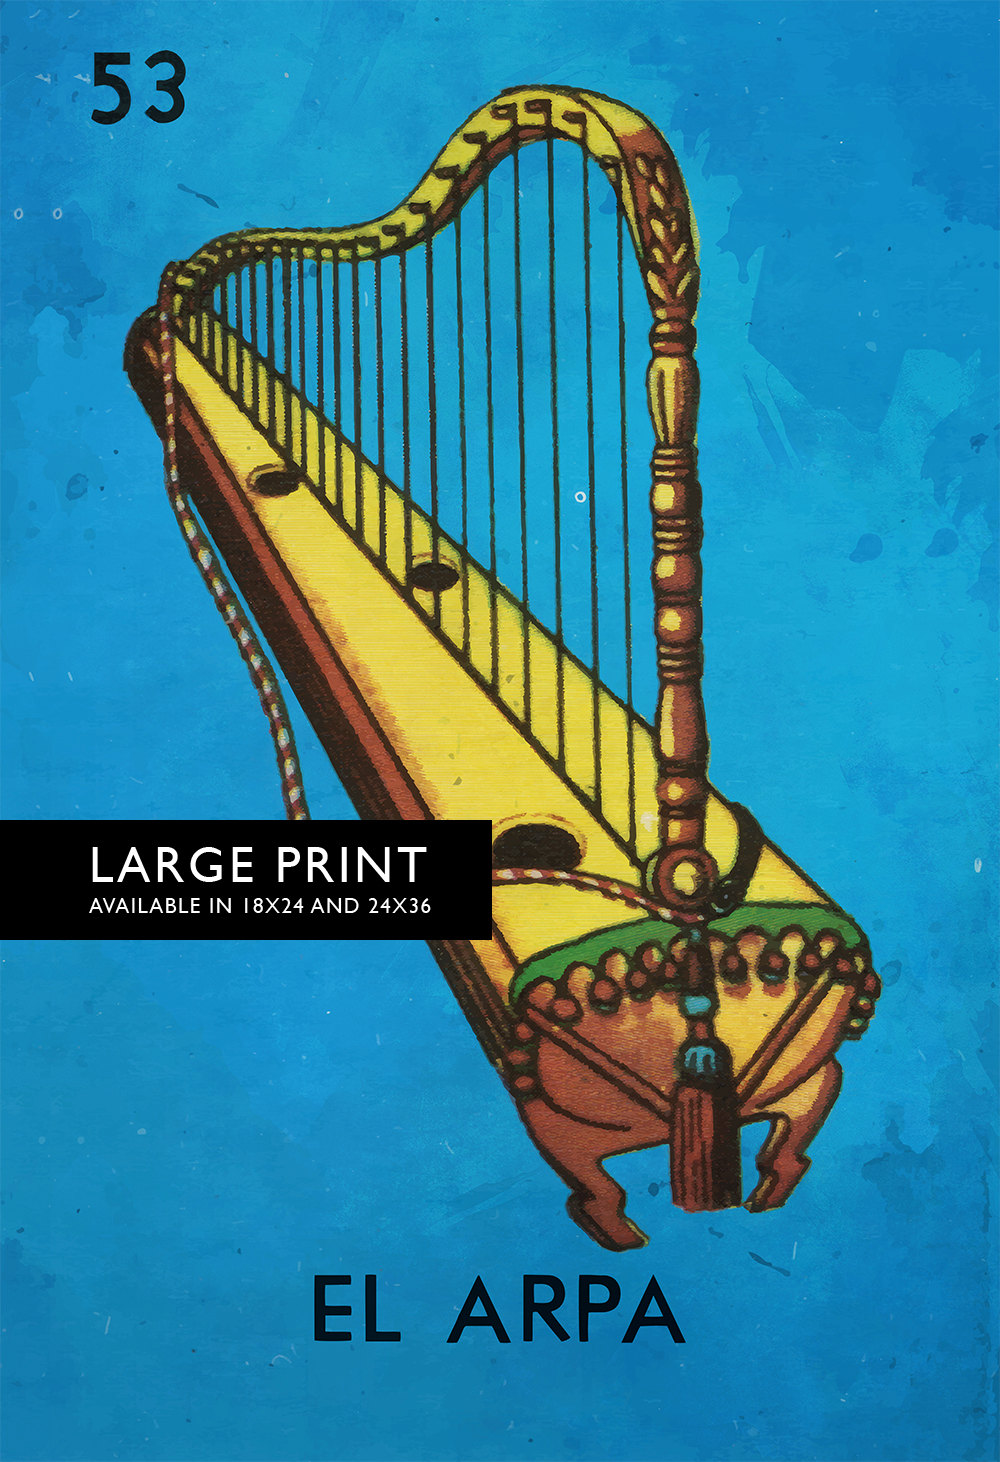 an essay on art prints and giclee art prints Giclee art prints are fine art prints usually produced by an ink-jet digital printing process giclee is the french term for 'gicler', which means to spurt out or spray it is a new art form since production of the first kinds of these prints in 1980s.